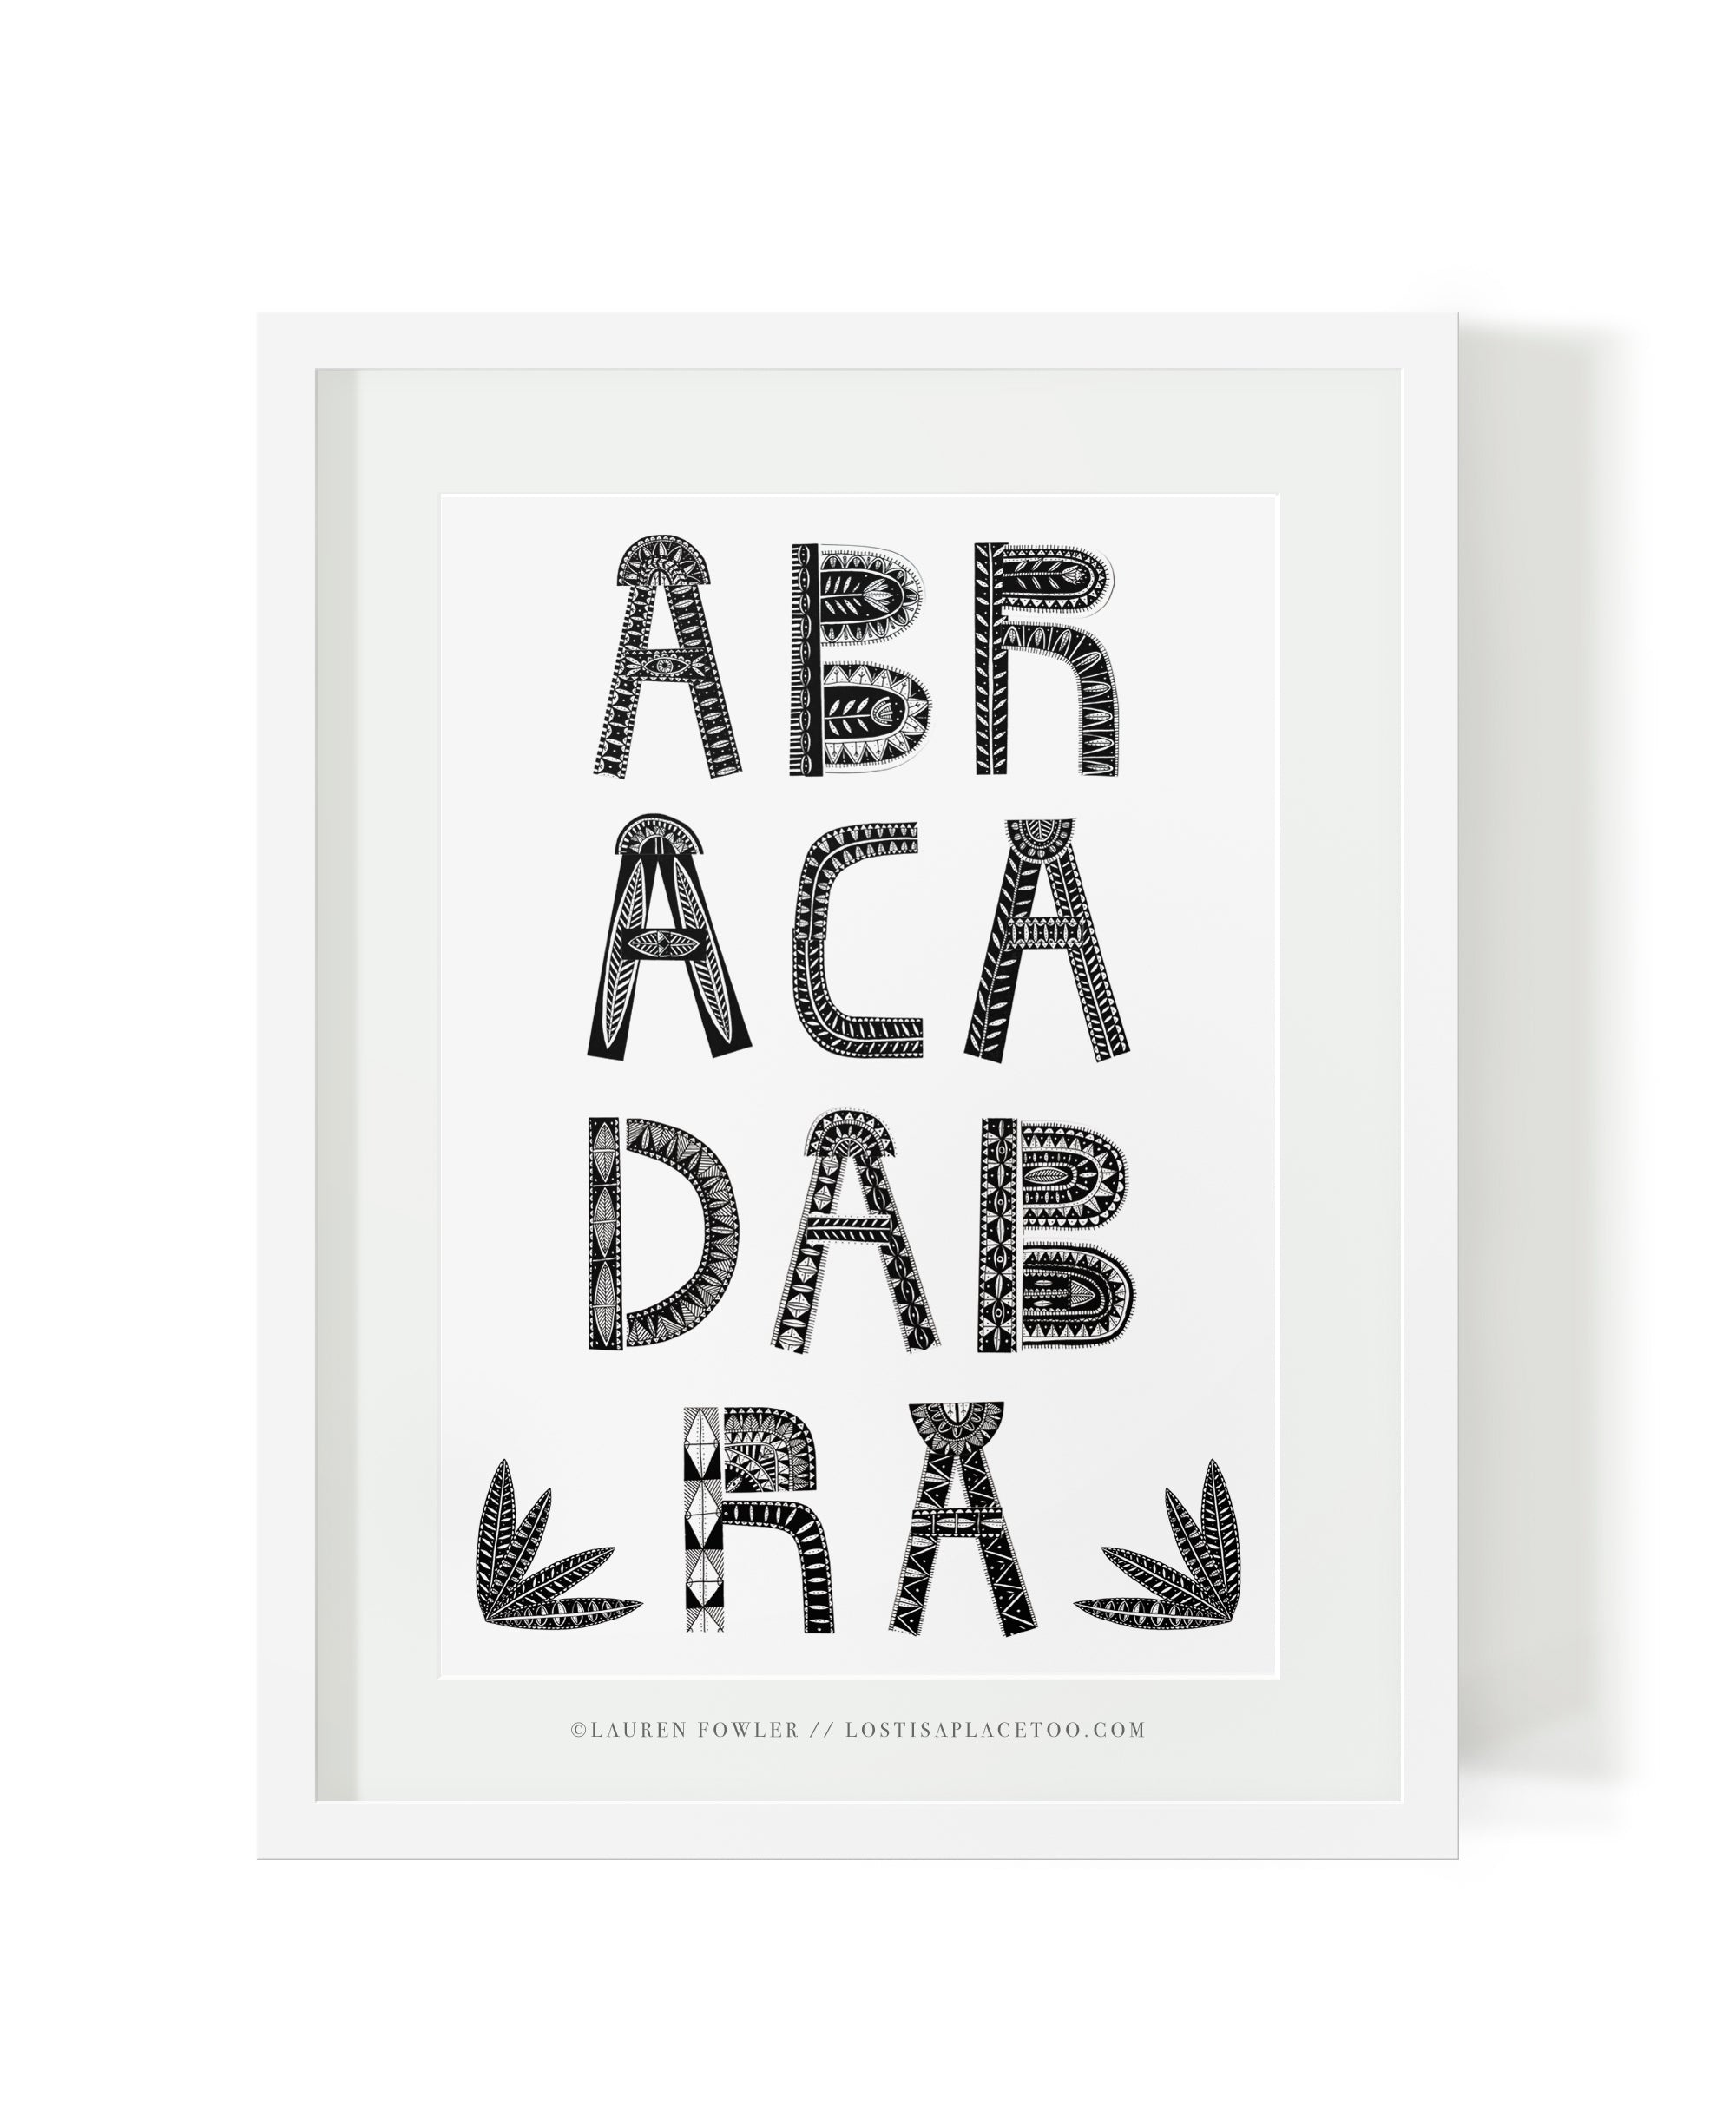 Abracadabra illustrated artwork by Lauren Fowler